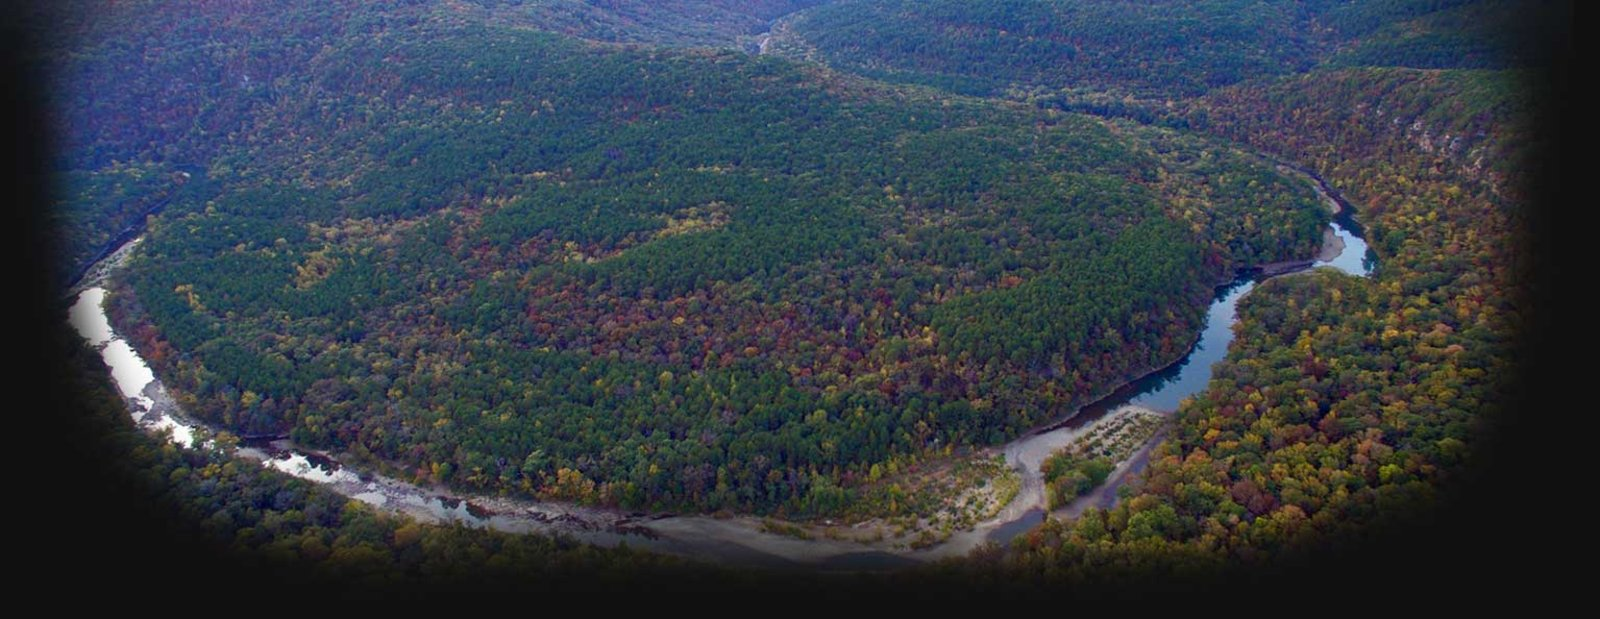 Image of an arial shot over a river bending around a forested area - images provided by Jesse Hays